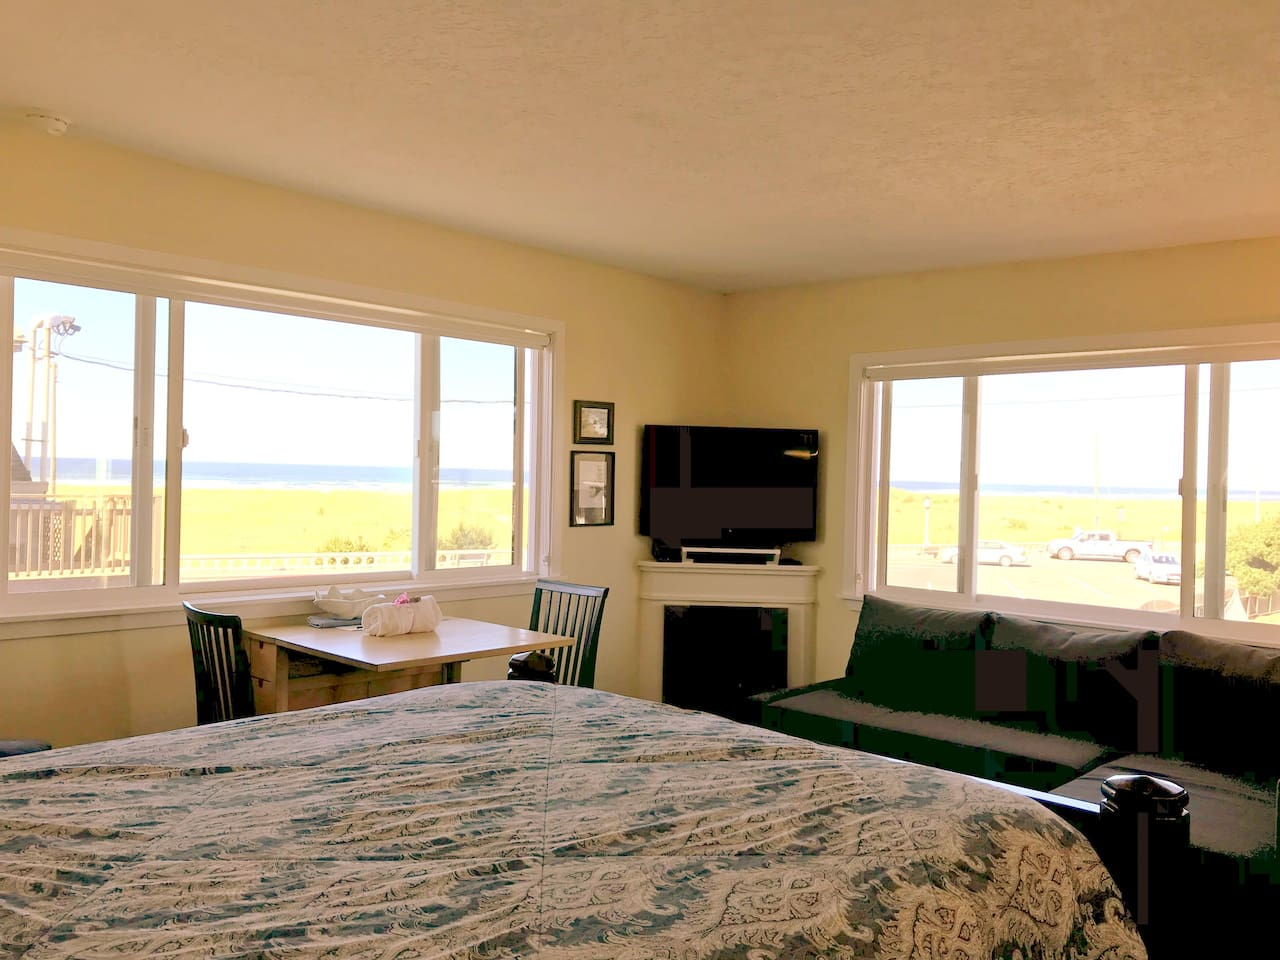 Light and Airy with Great Ocean Views from 2 Large Picture Windows!